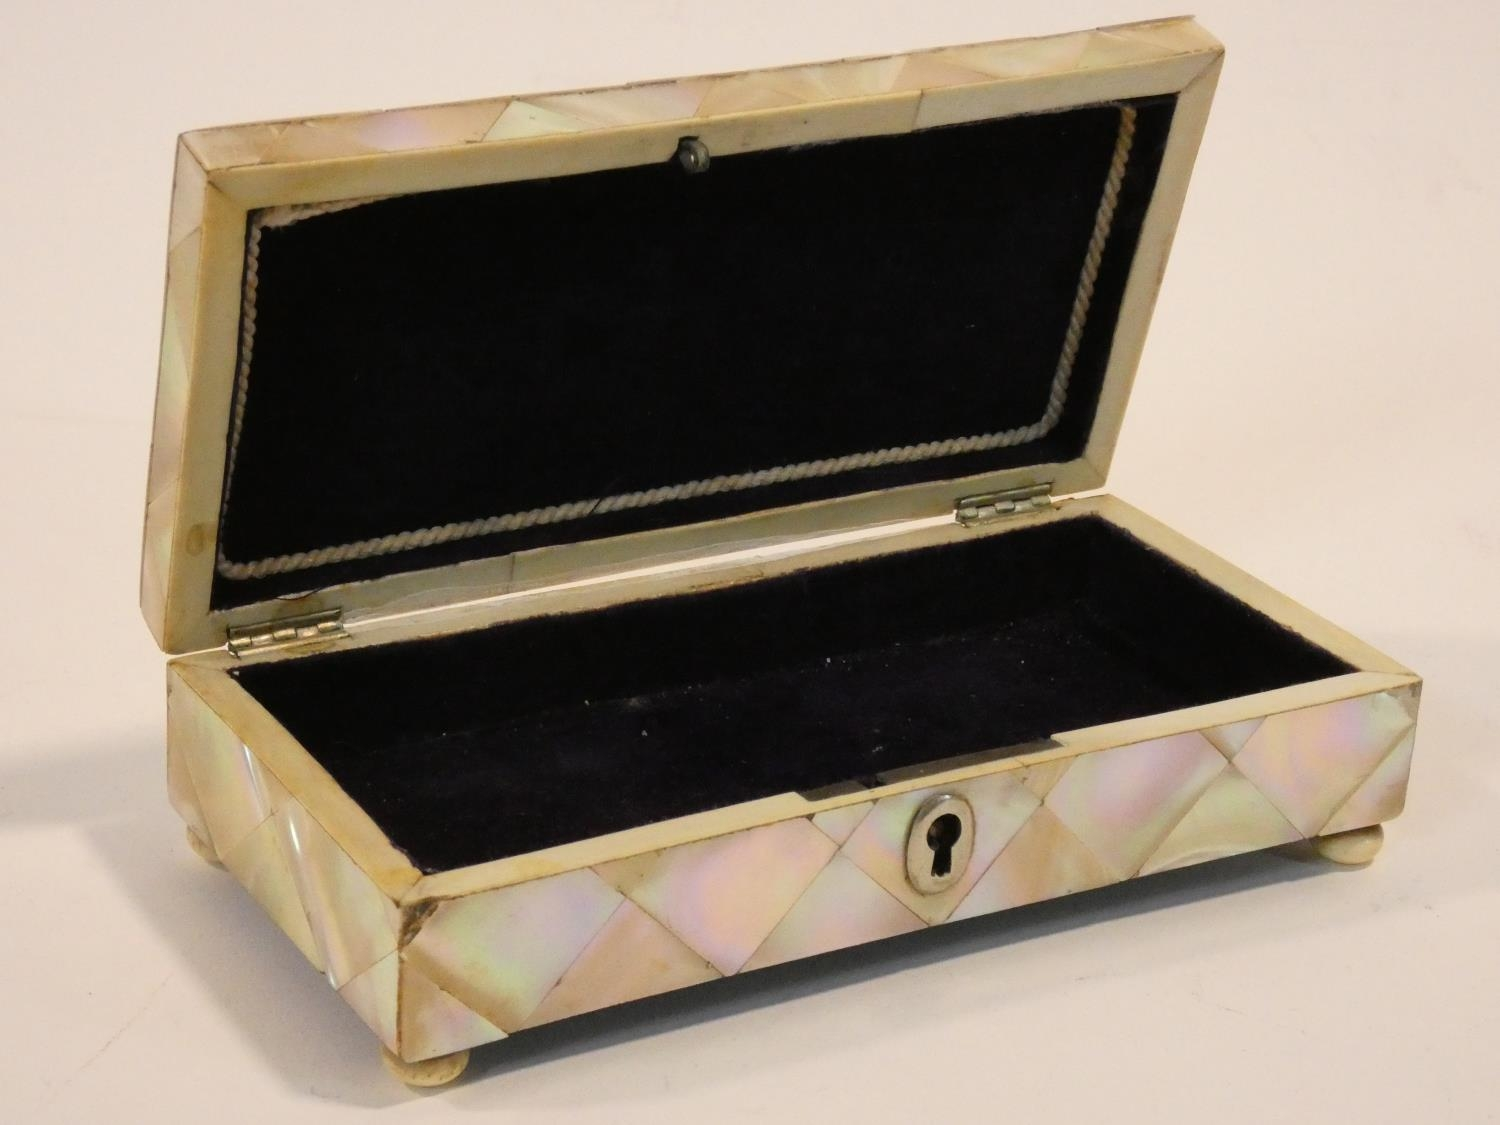 A 19th century parquetry inlaid mother of pearl jewellery casket on ivory bun feet. Missing key. H.